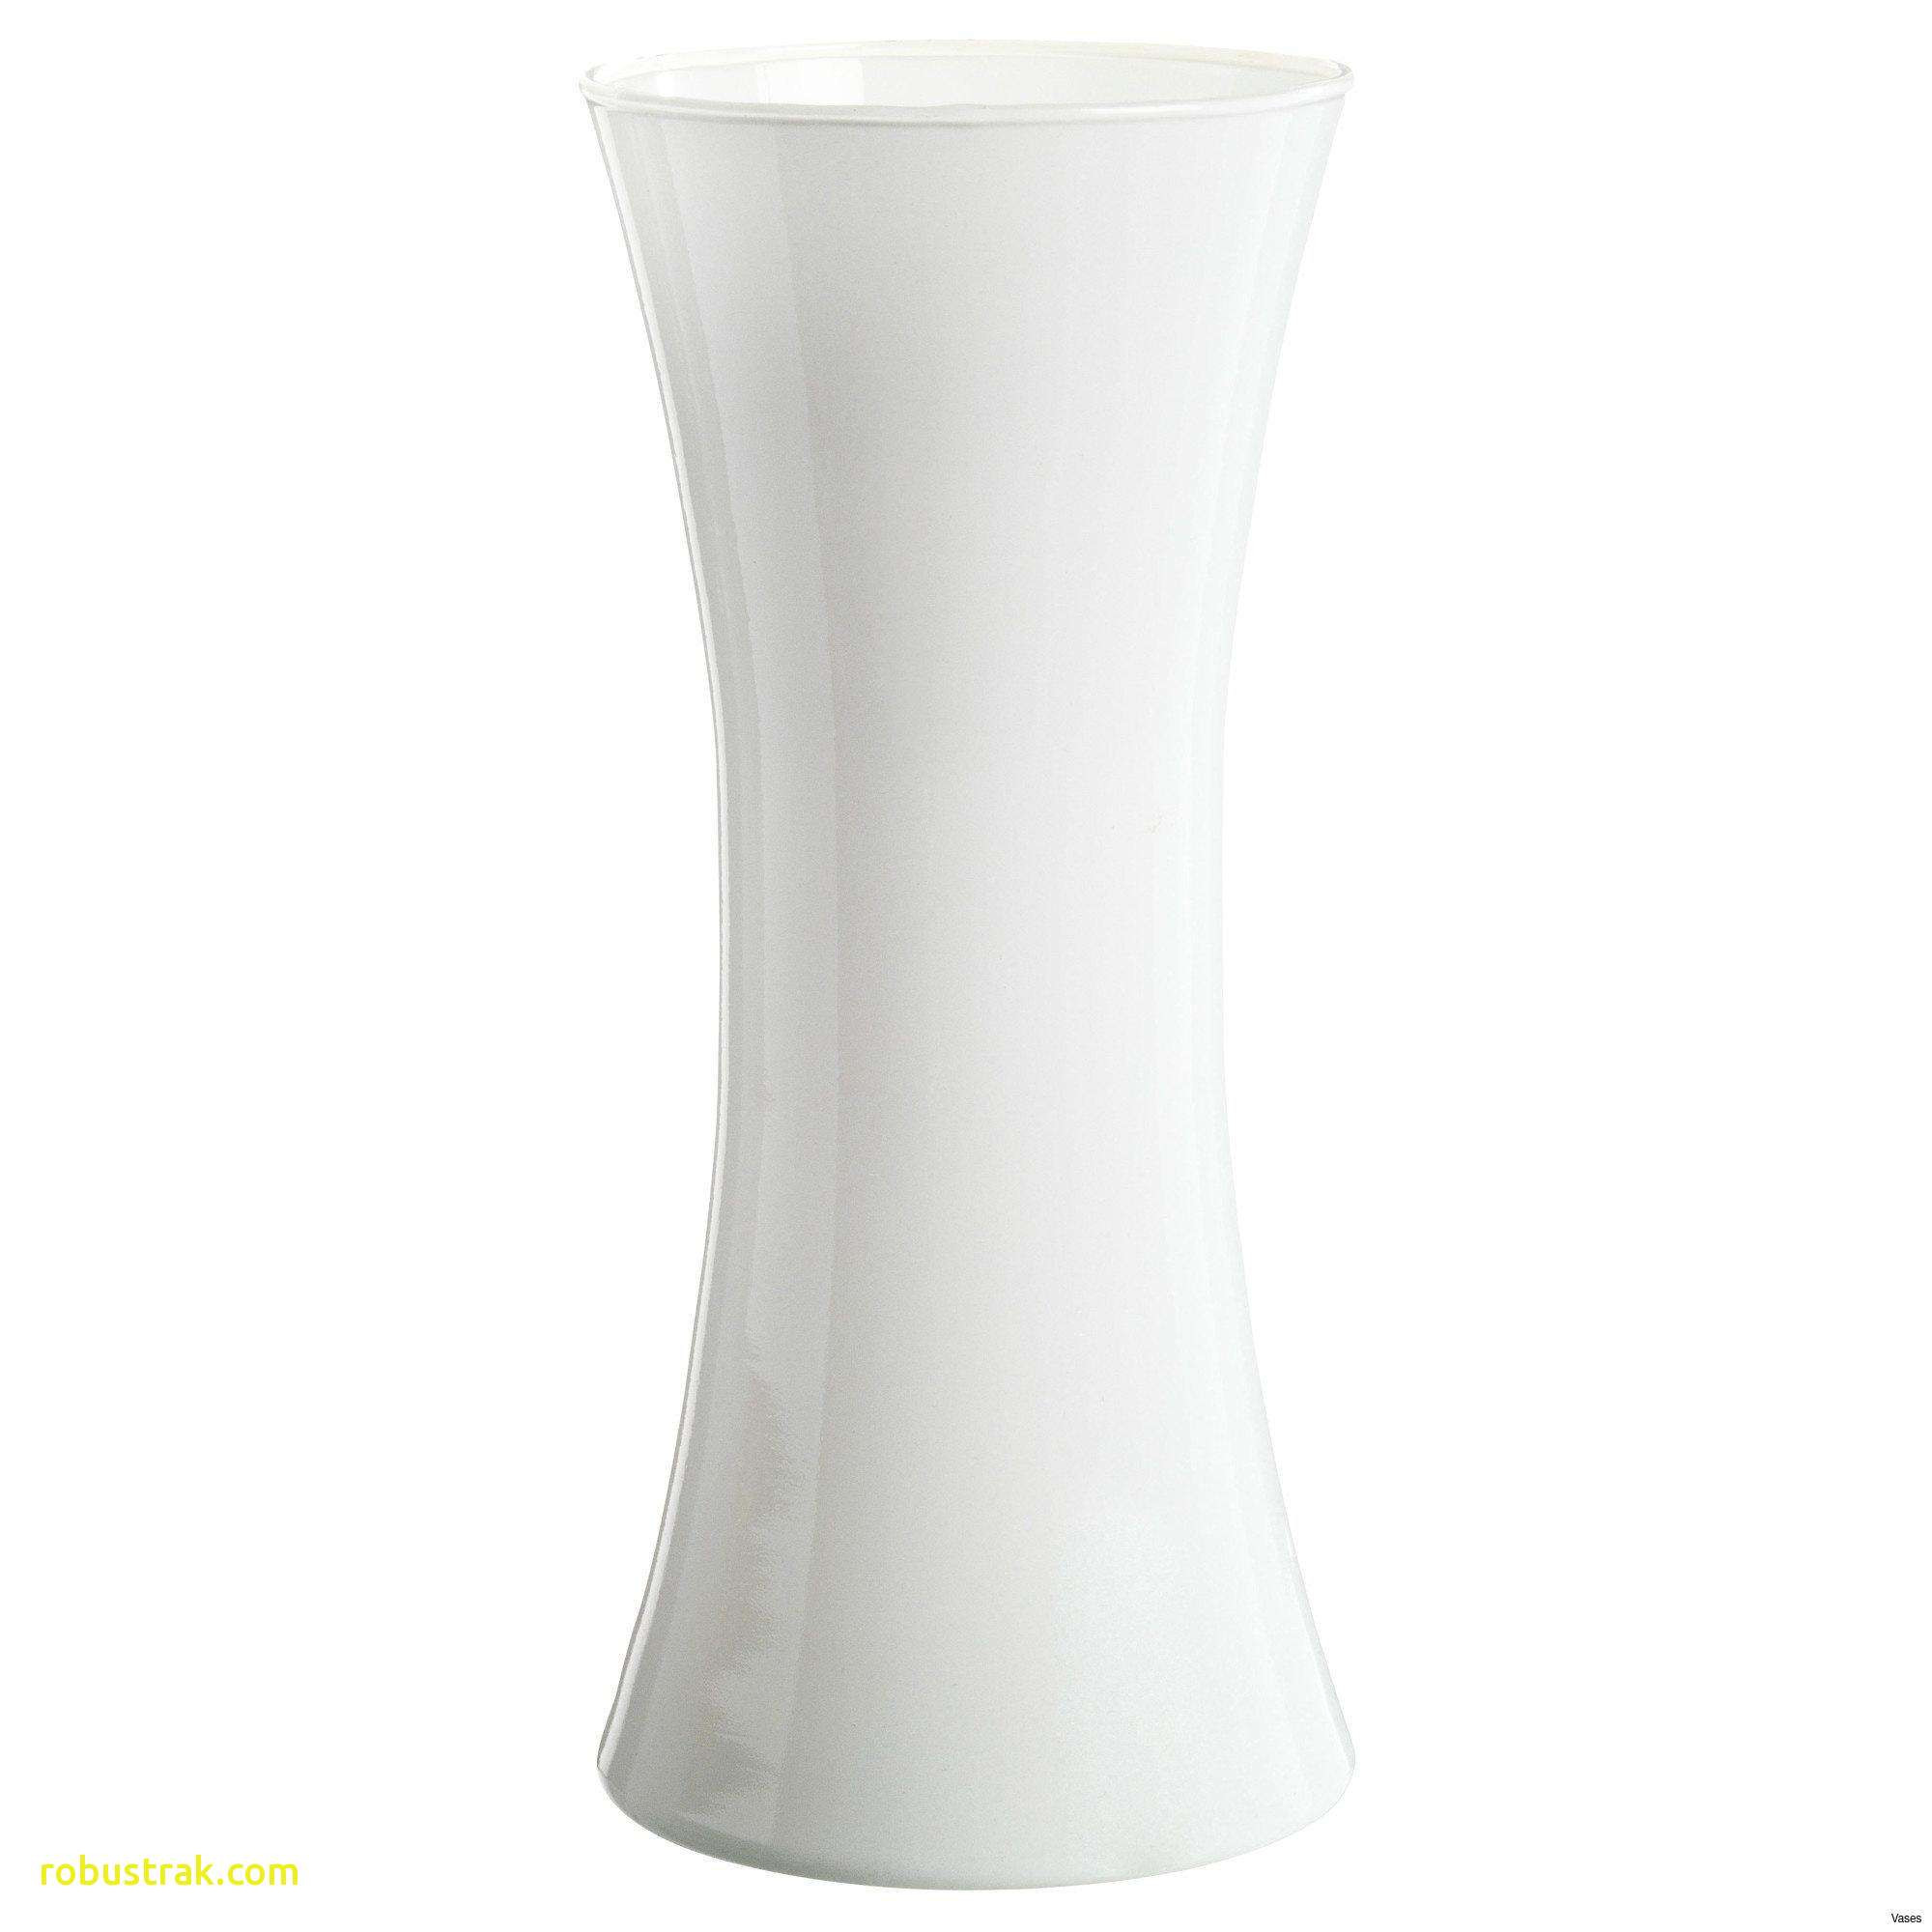 22 Nice Floor Vases Ikea 2021 free download floor vases ikea of best of living room pictures home design ideas for full size of living room tall black vase awesome living room ikea vases new pe size